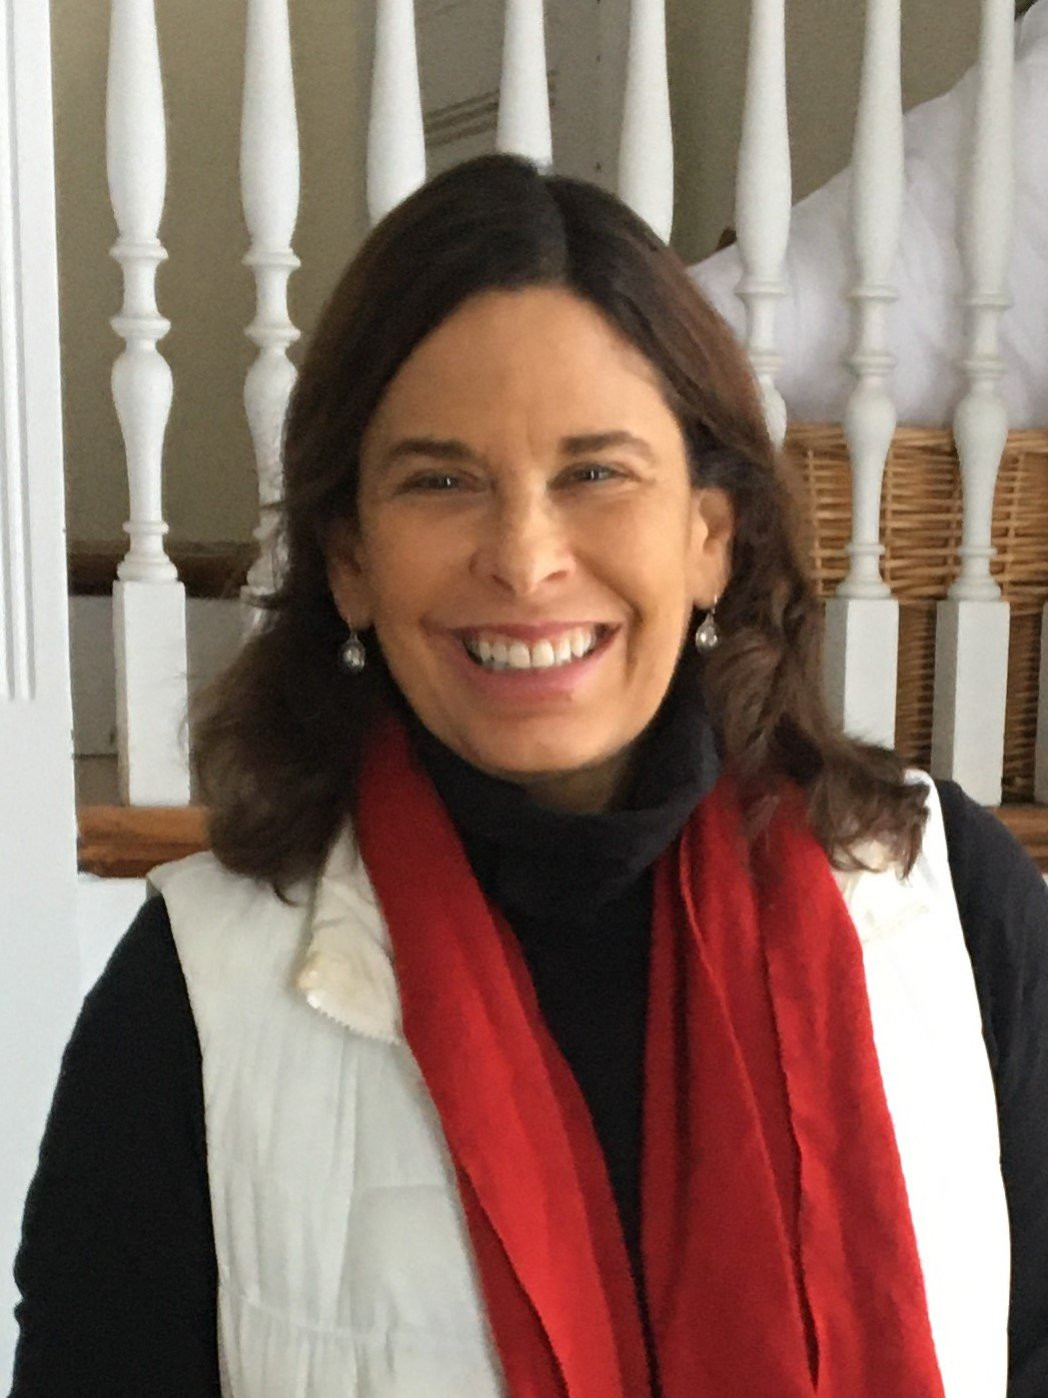 Author - Ellen Pinkos Cobb